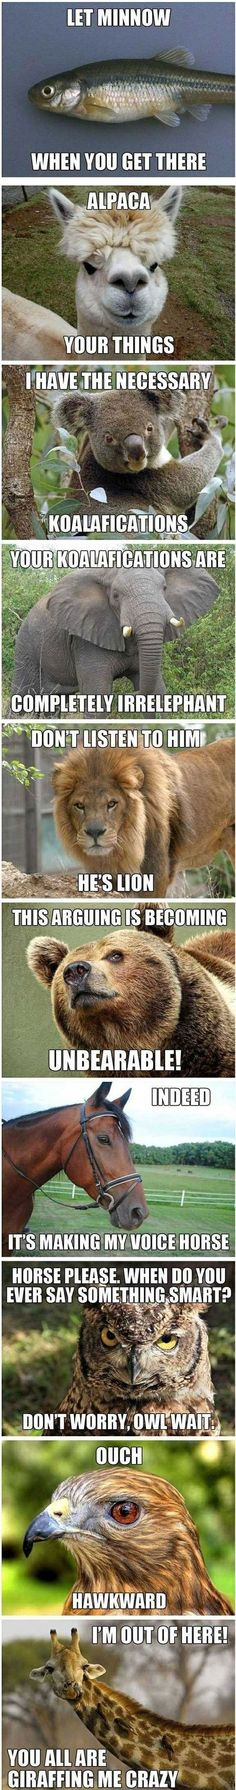 Some Really Bad (but FUNNY) Animal Puns